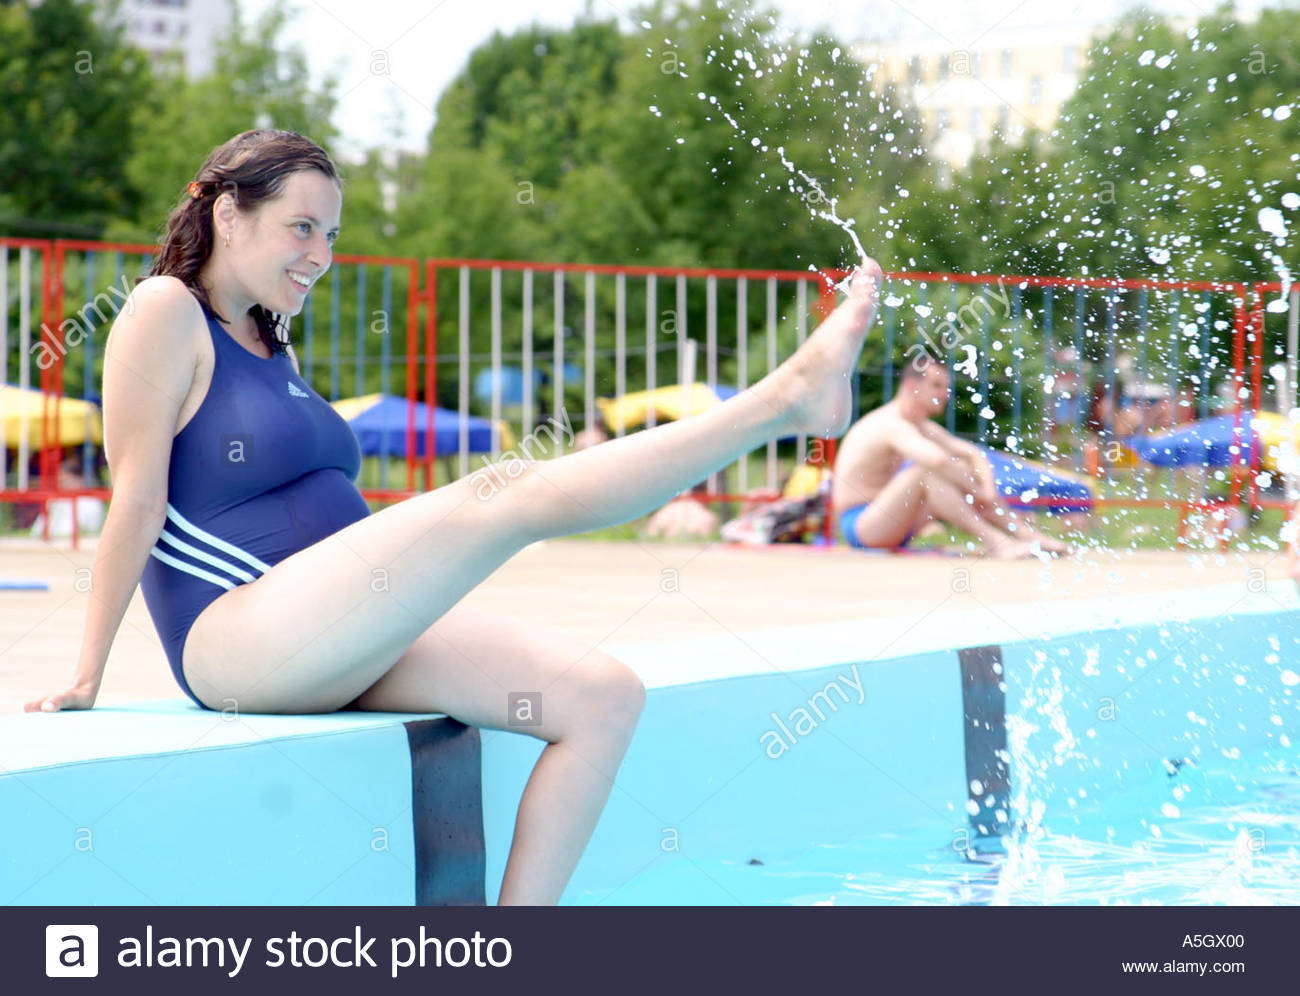 Pregnant Young Woman By The Swimming Pool Stock Photo Royalty Free Image 3693055 Alamy